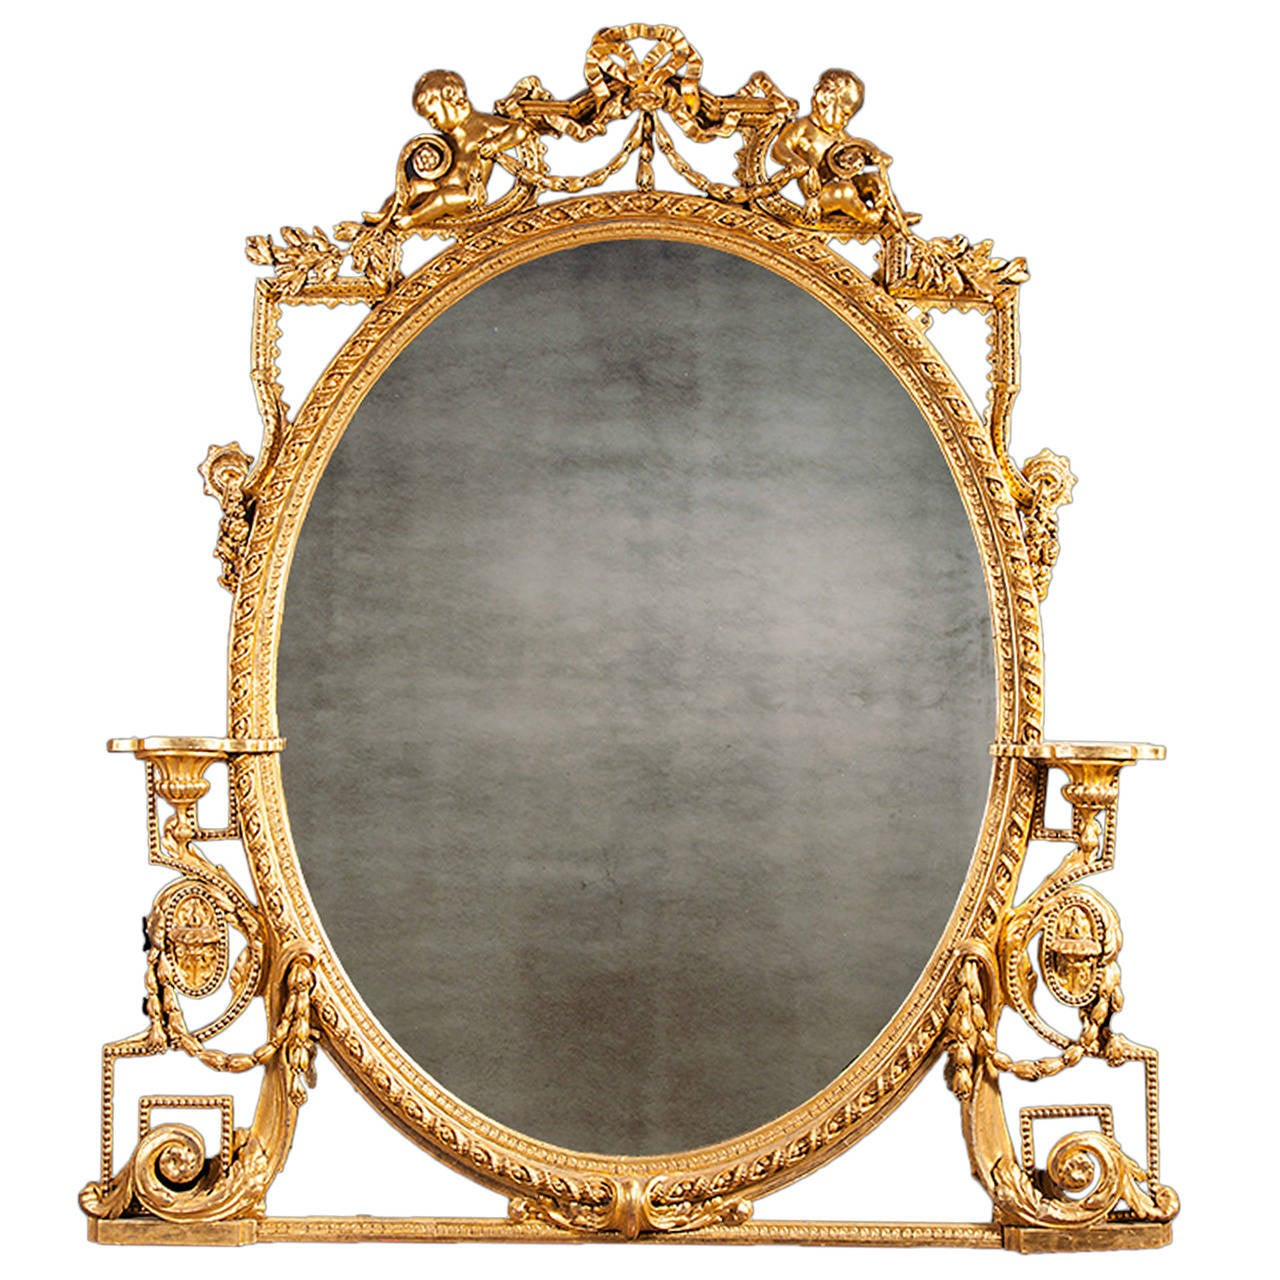 Antique gilt over mantel mirror at 1stdibs for Mantel mirrors